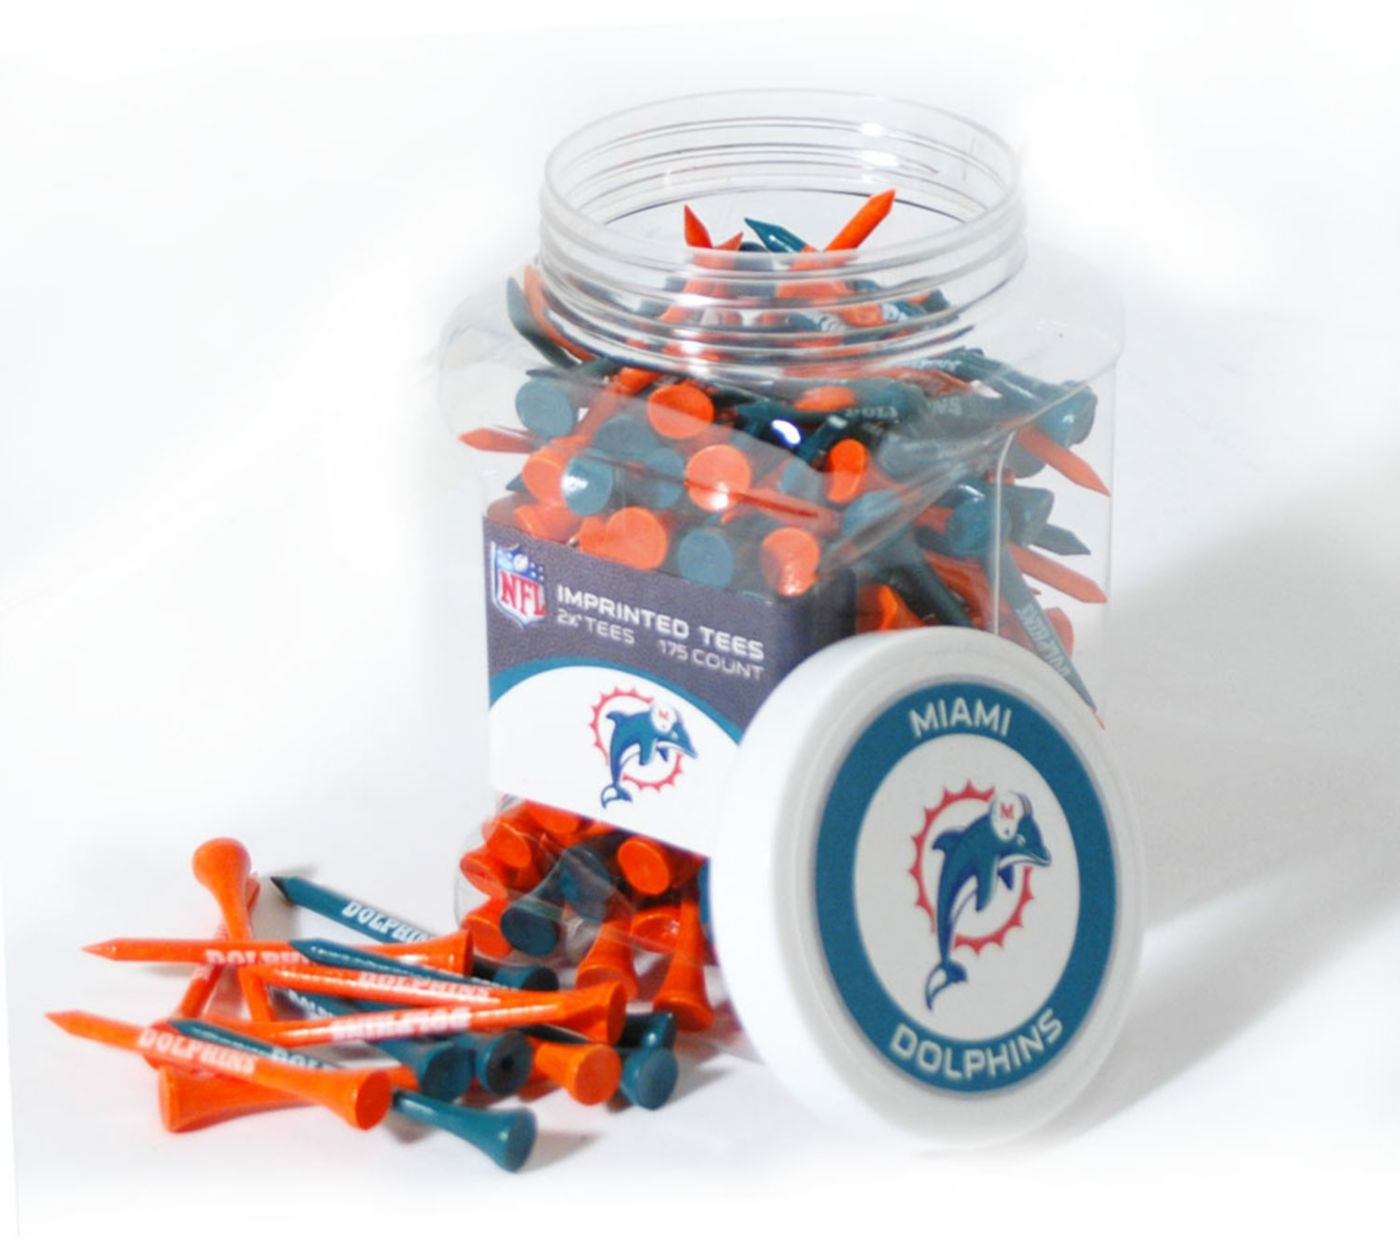 Team Golf Miami Dolphins Tee Jar - 175 Pack